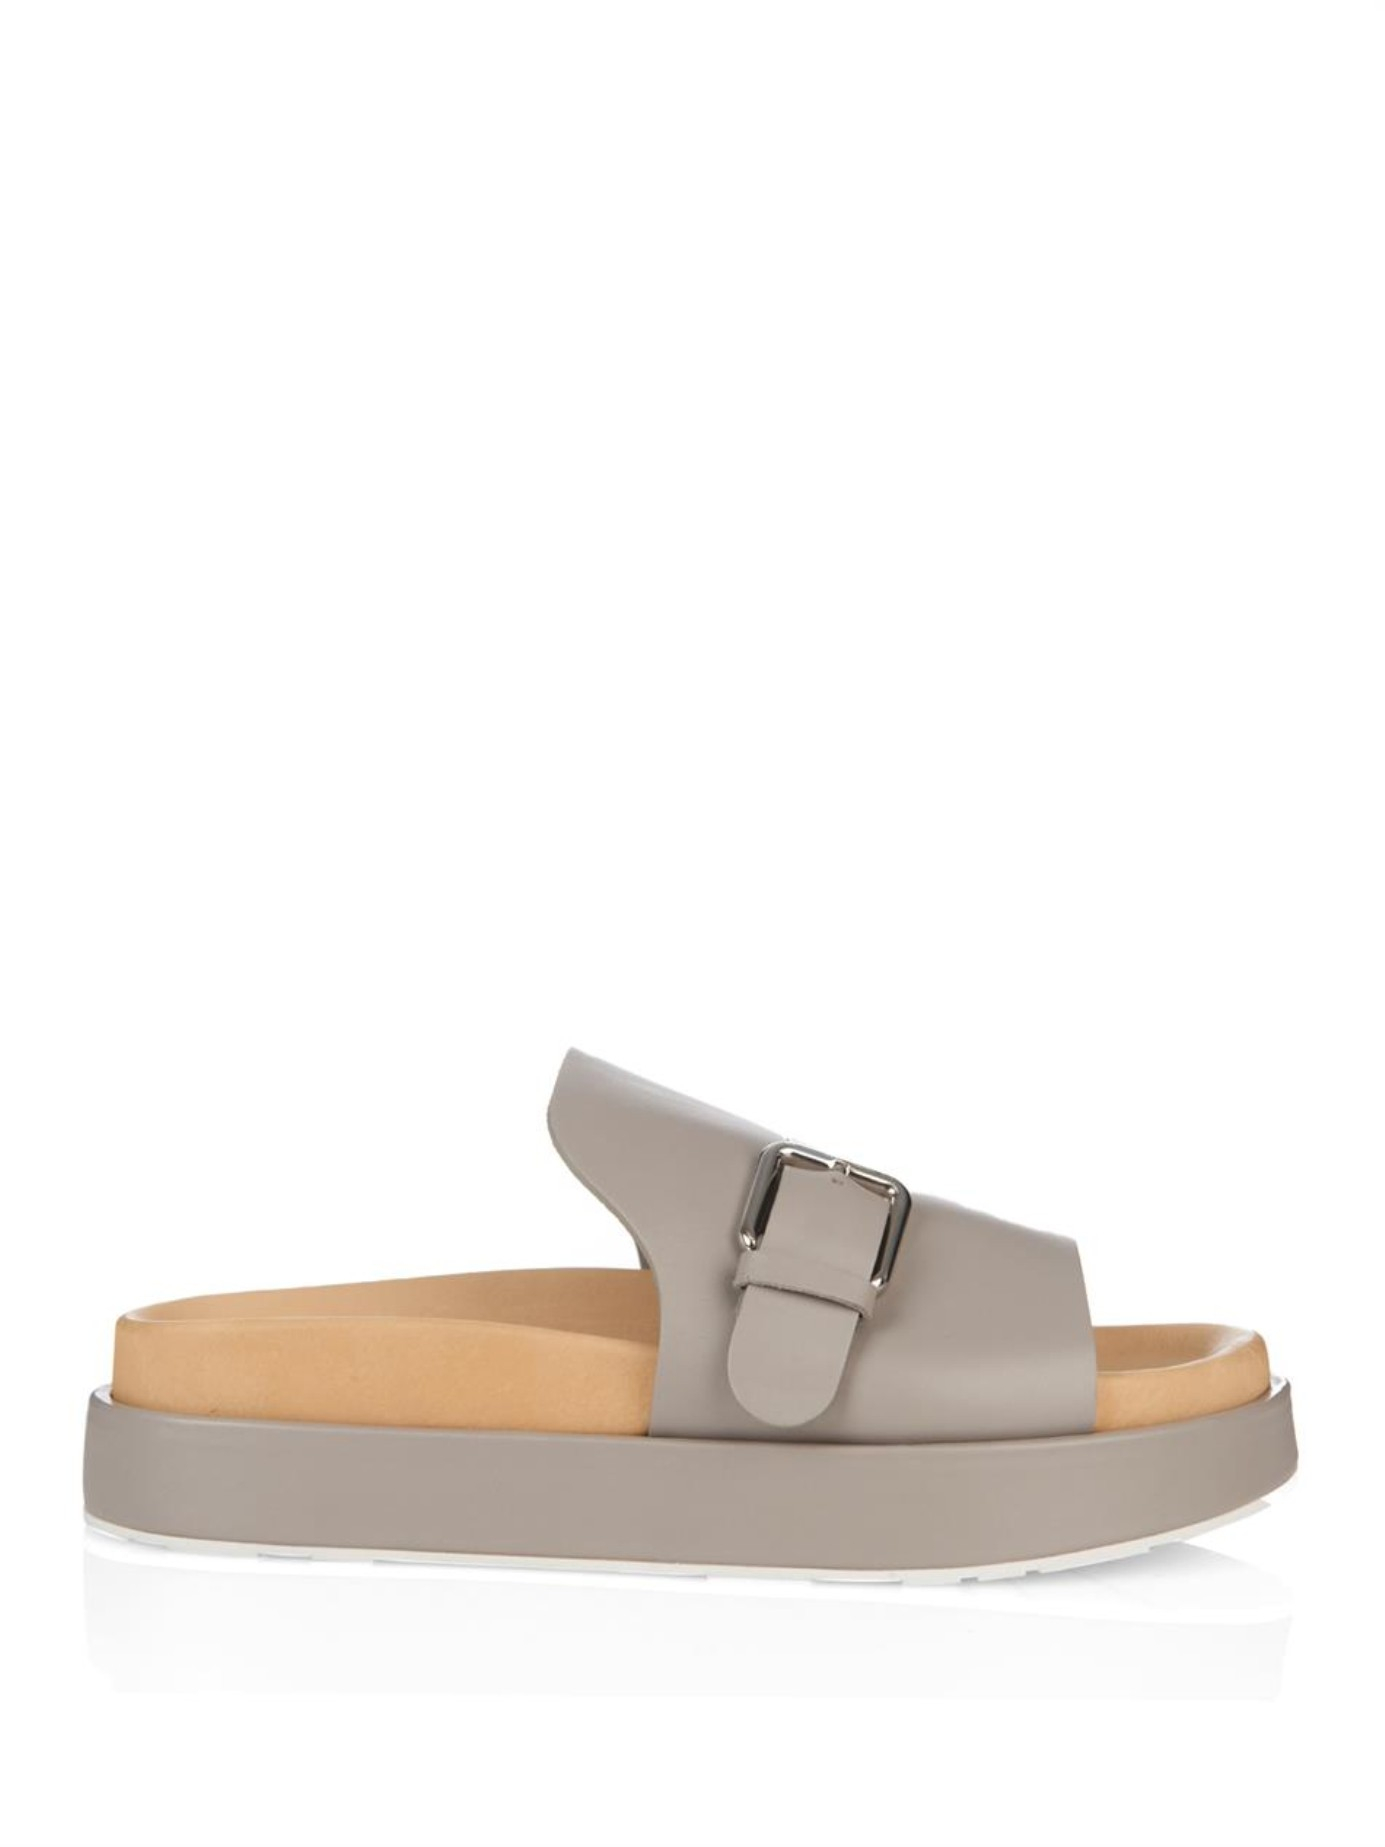 Jil Sander Leather Sandals Clearance Prices Sale Pictures Fast Delivery Sale Online Outlet Footlocker Pictures Outlet Locations Cheap Online Ei1Bc